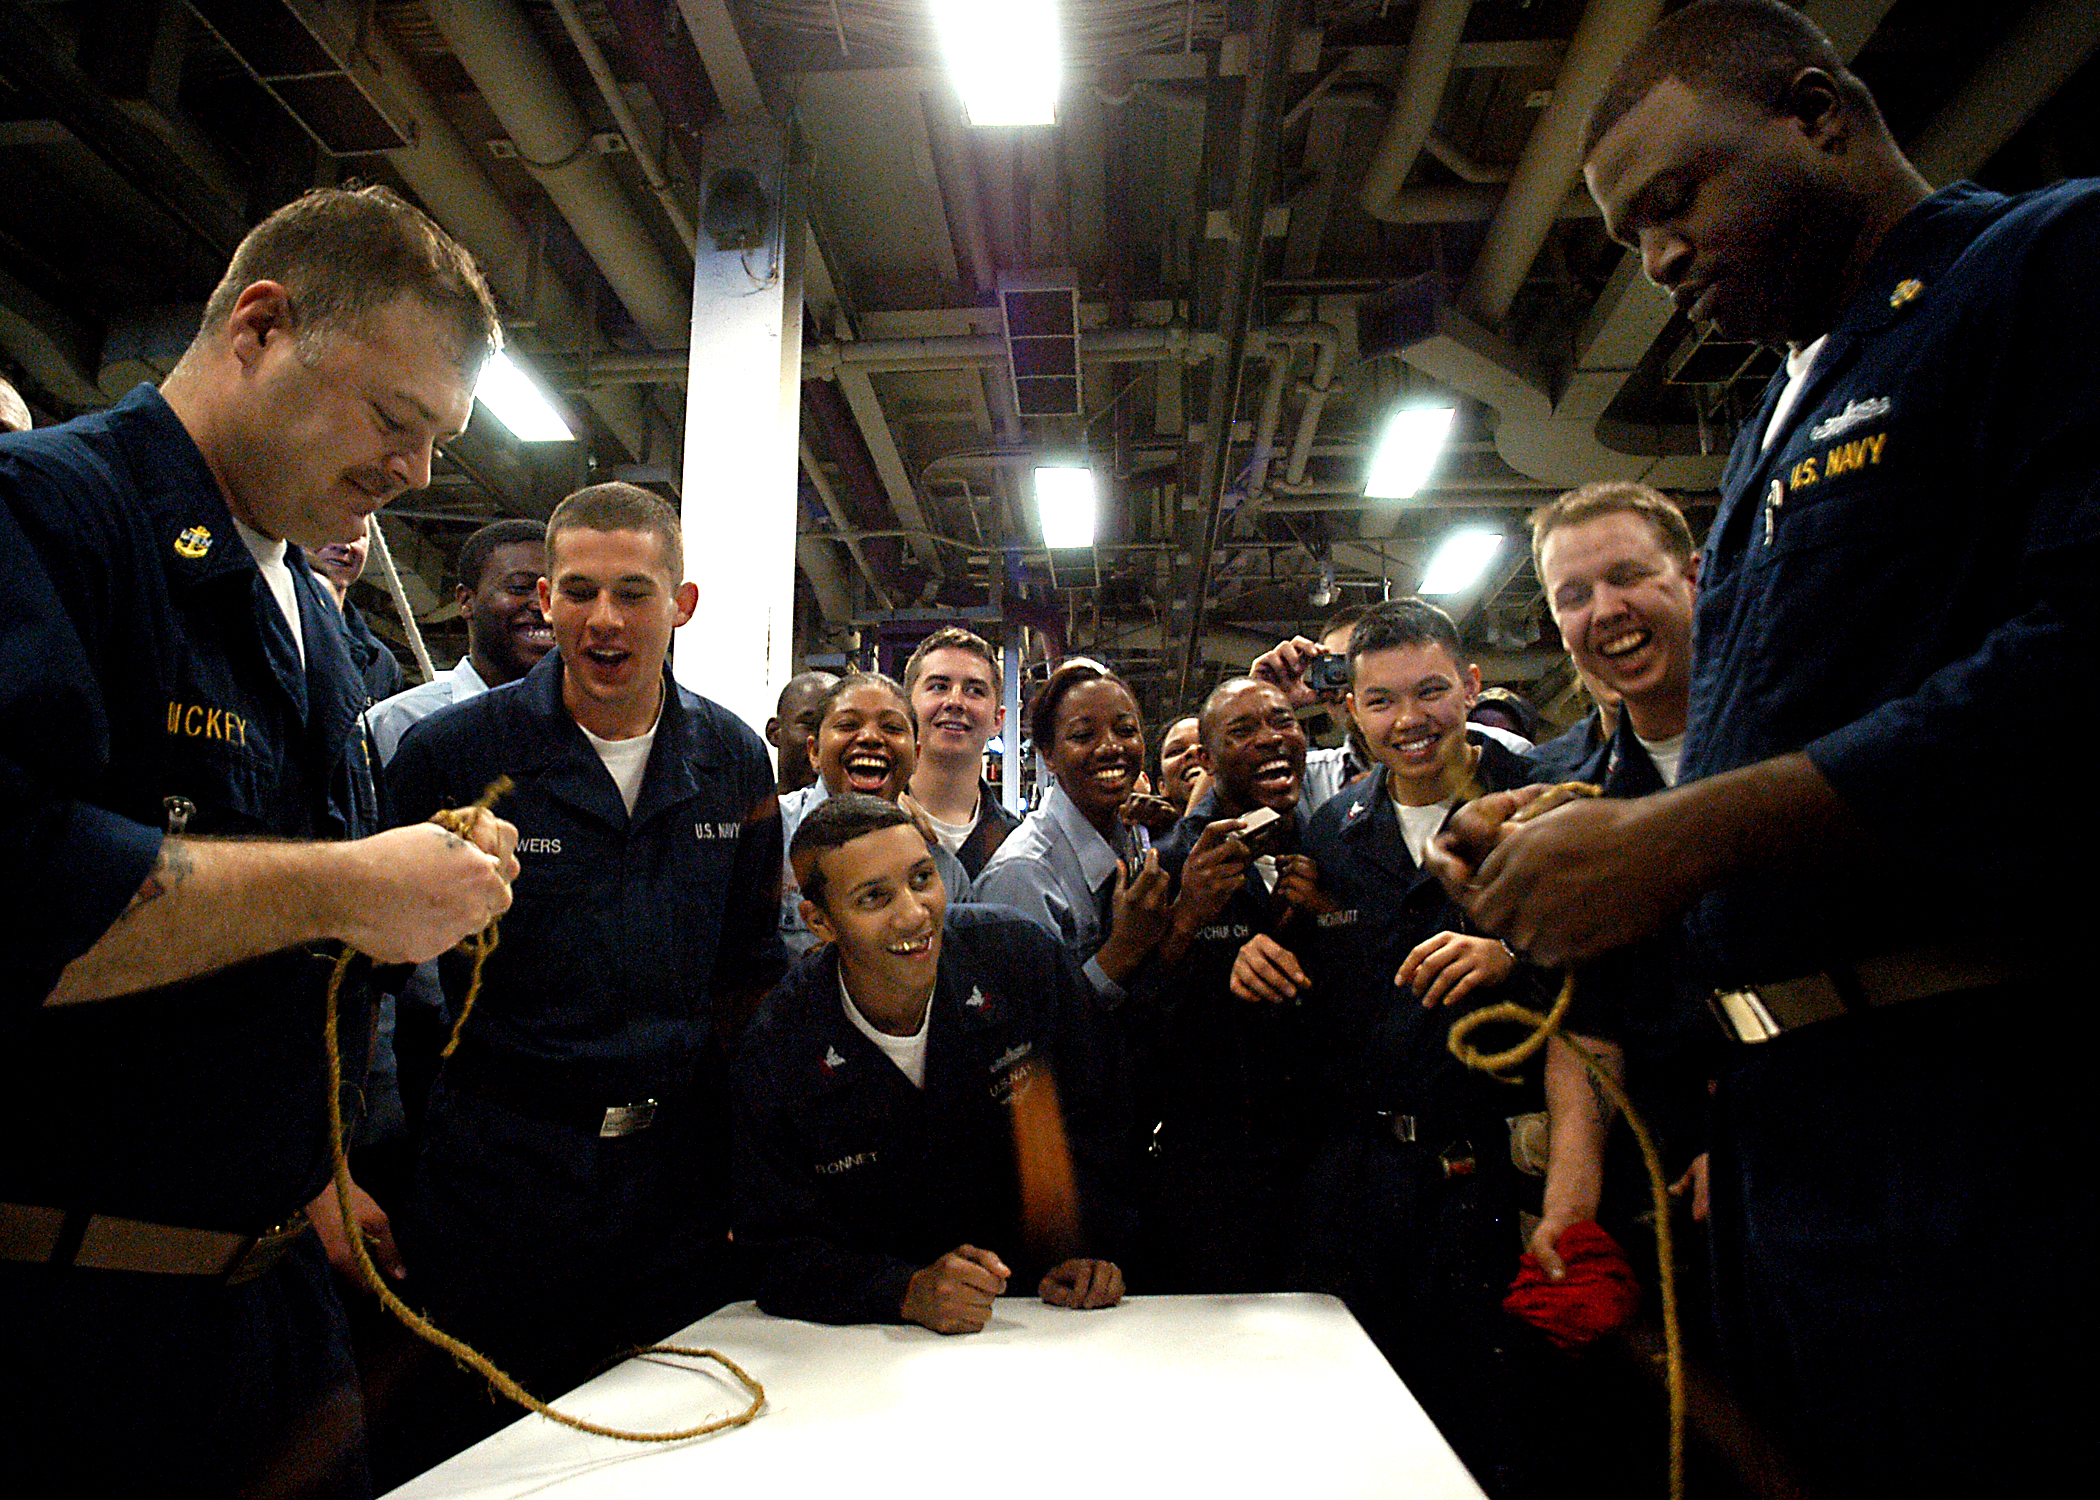 File:US Navy 030329-N-4048T-088 Chief Boatswain's Mates